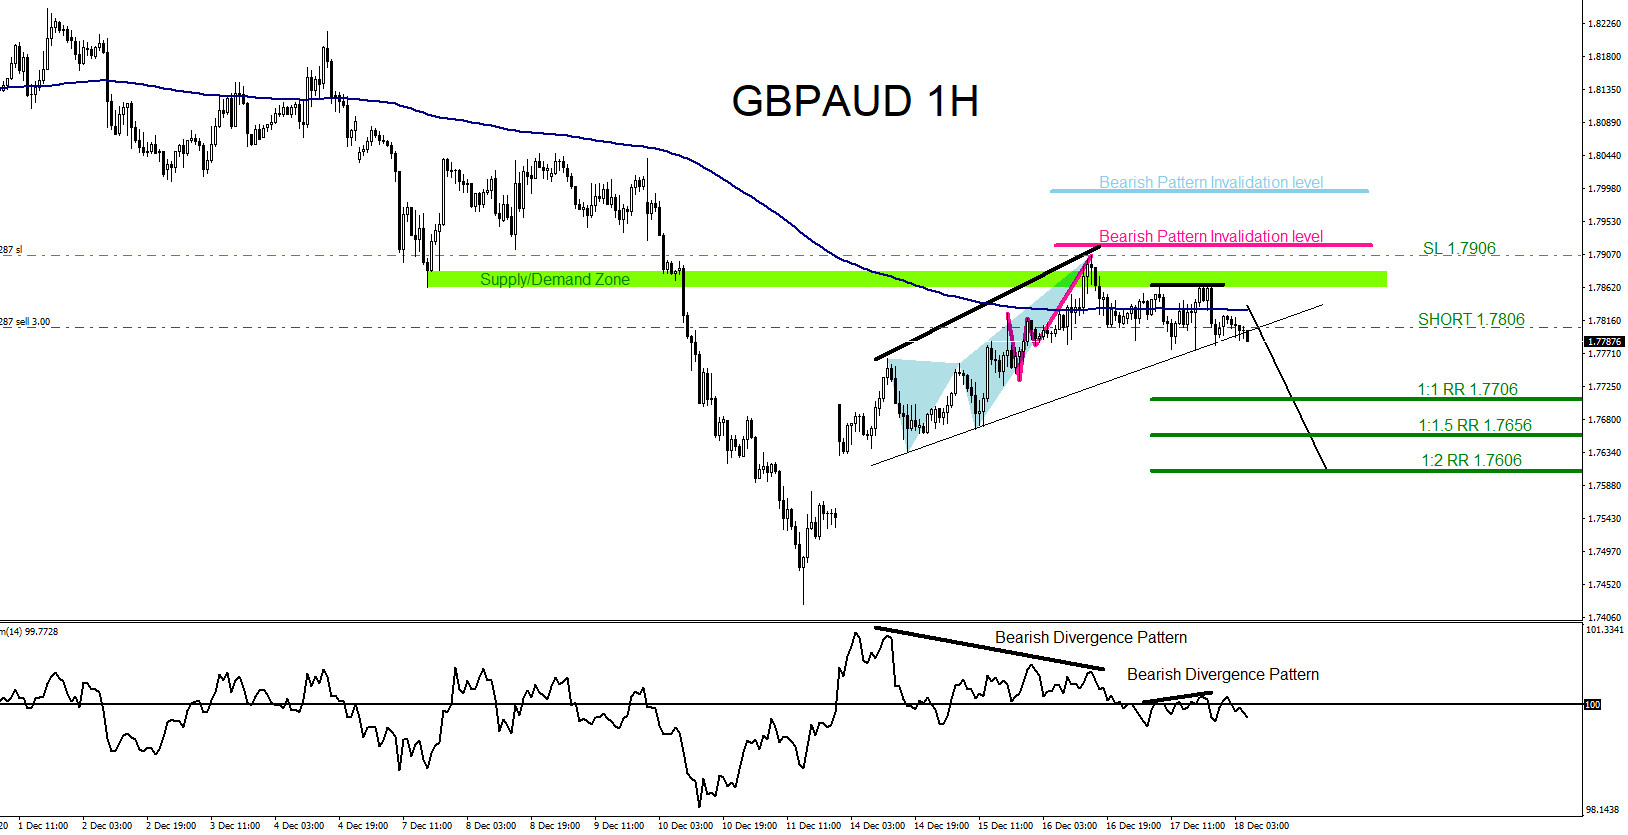 GBPAUD : Catching the Move Lower